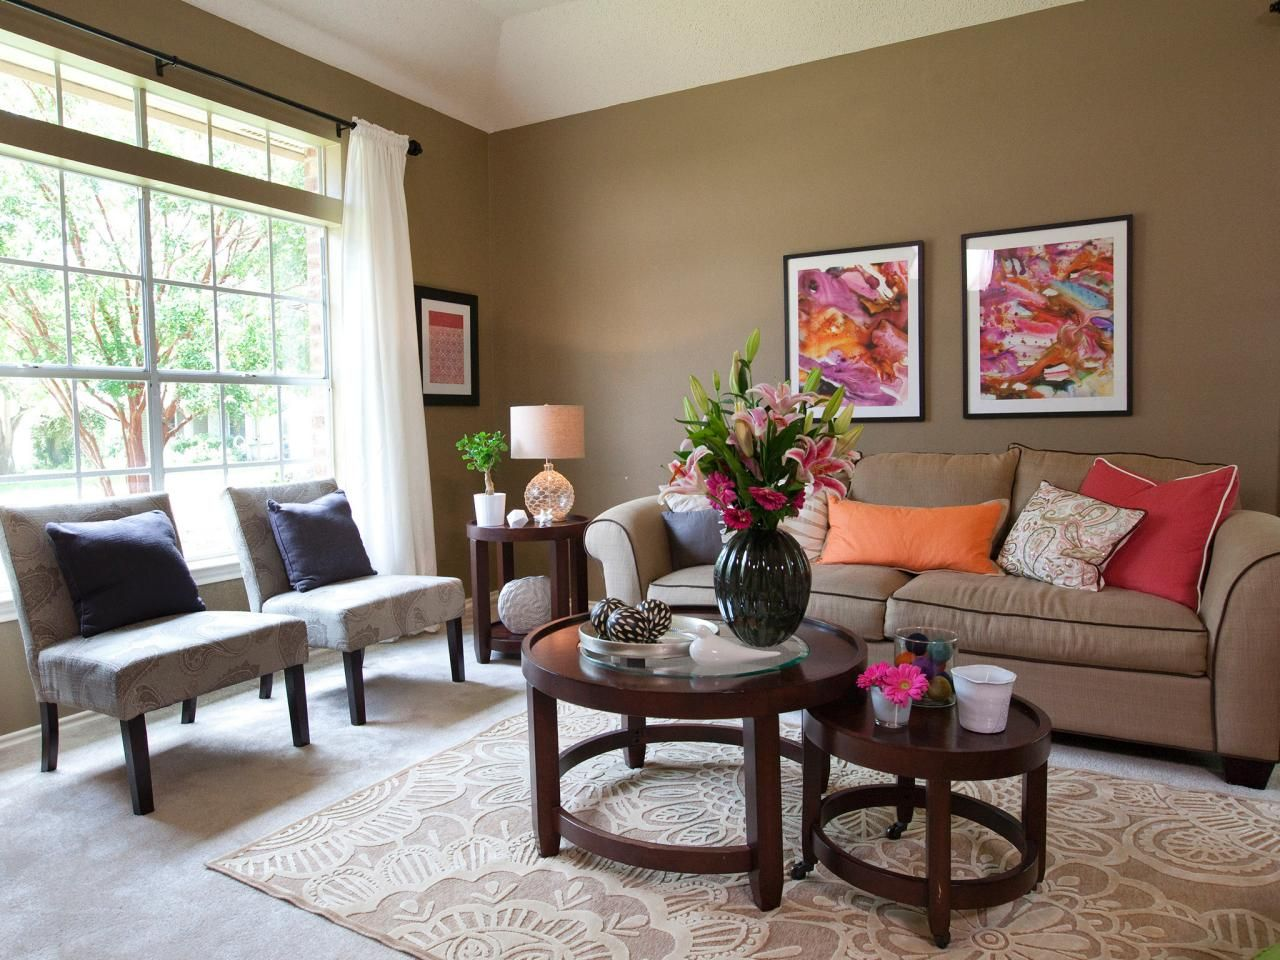 This lively living room features an all-over earthy taupe color with pops  of color